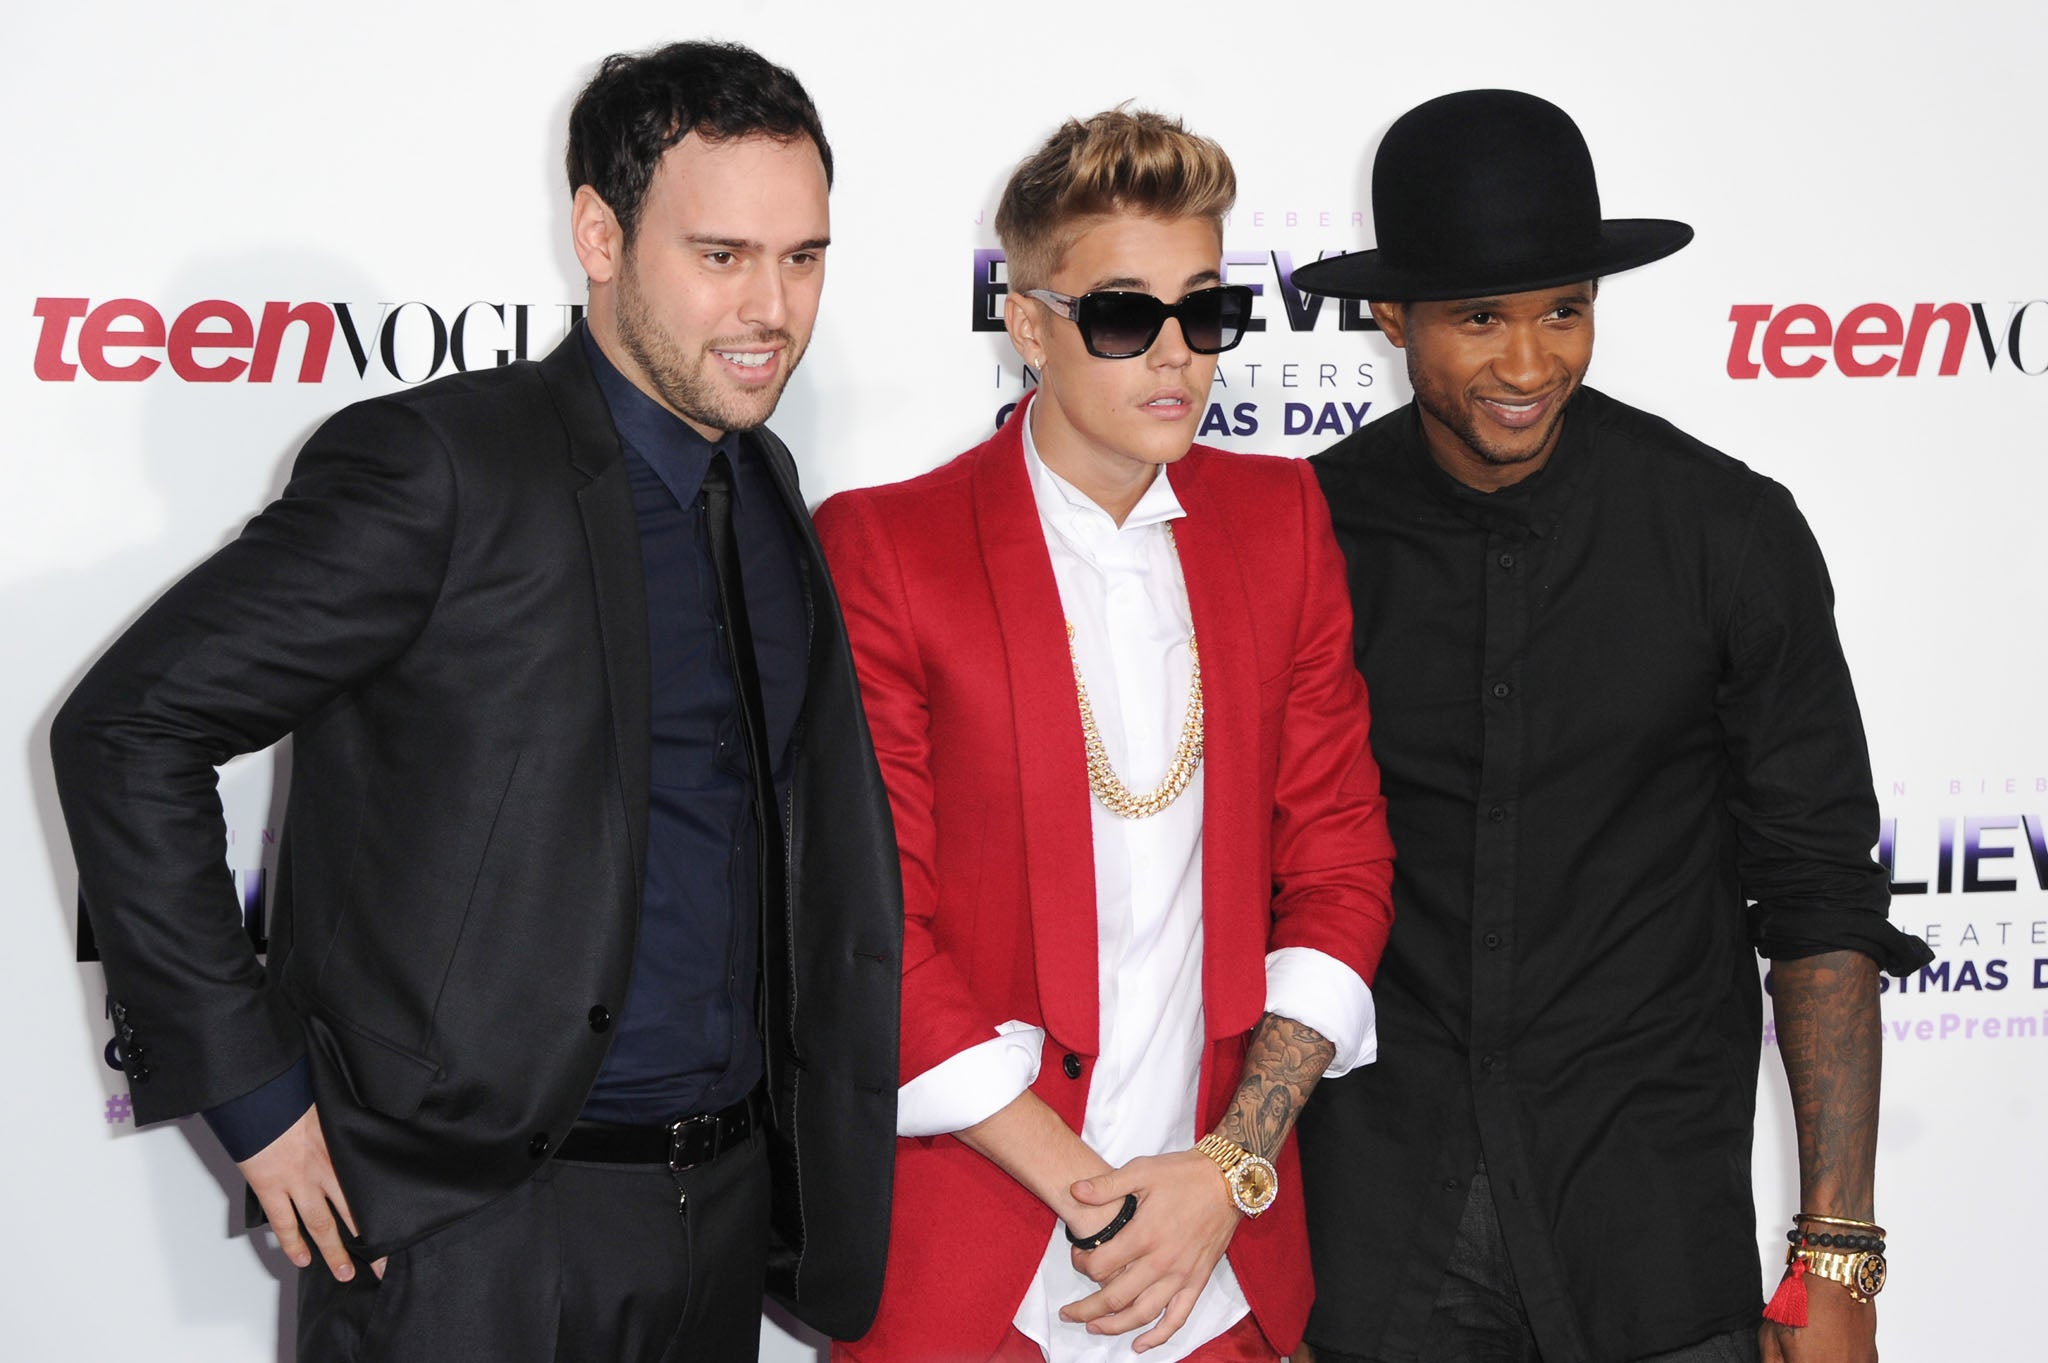 Justin Biebers Manager Scooter Braun Warns Star To Be Better Or